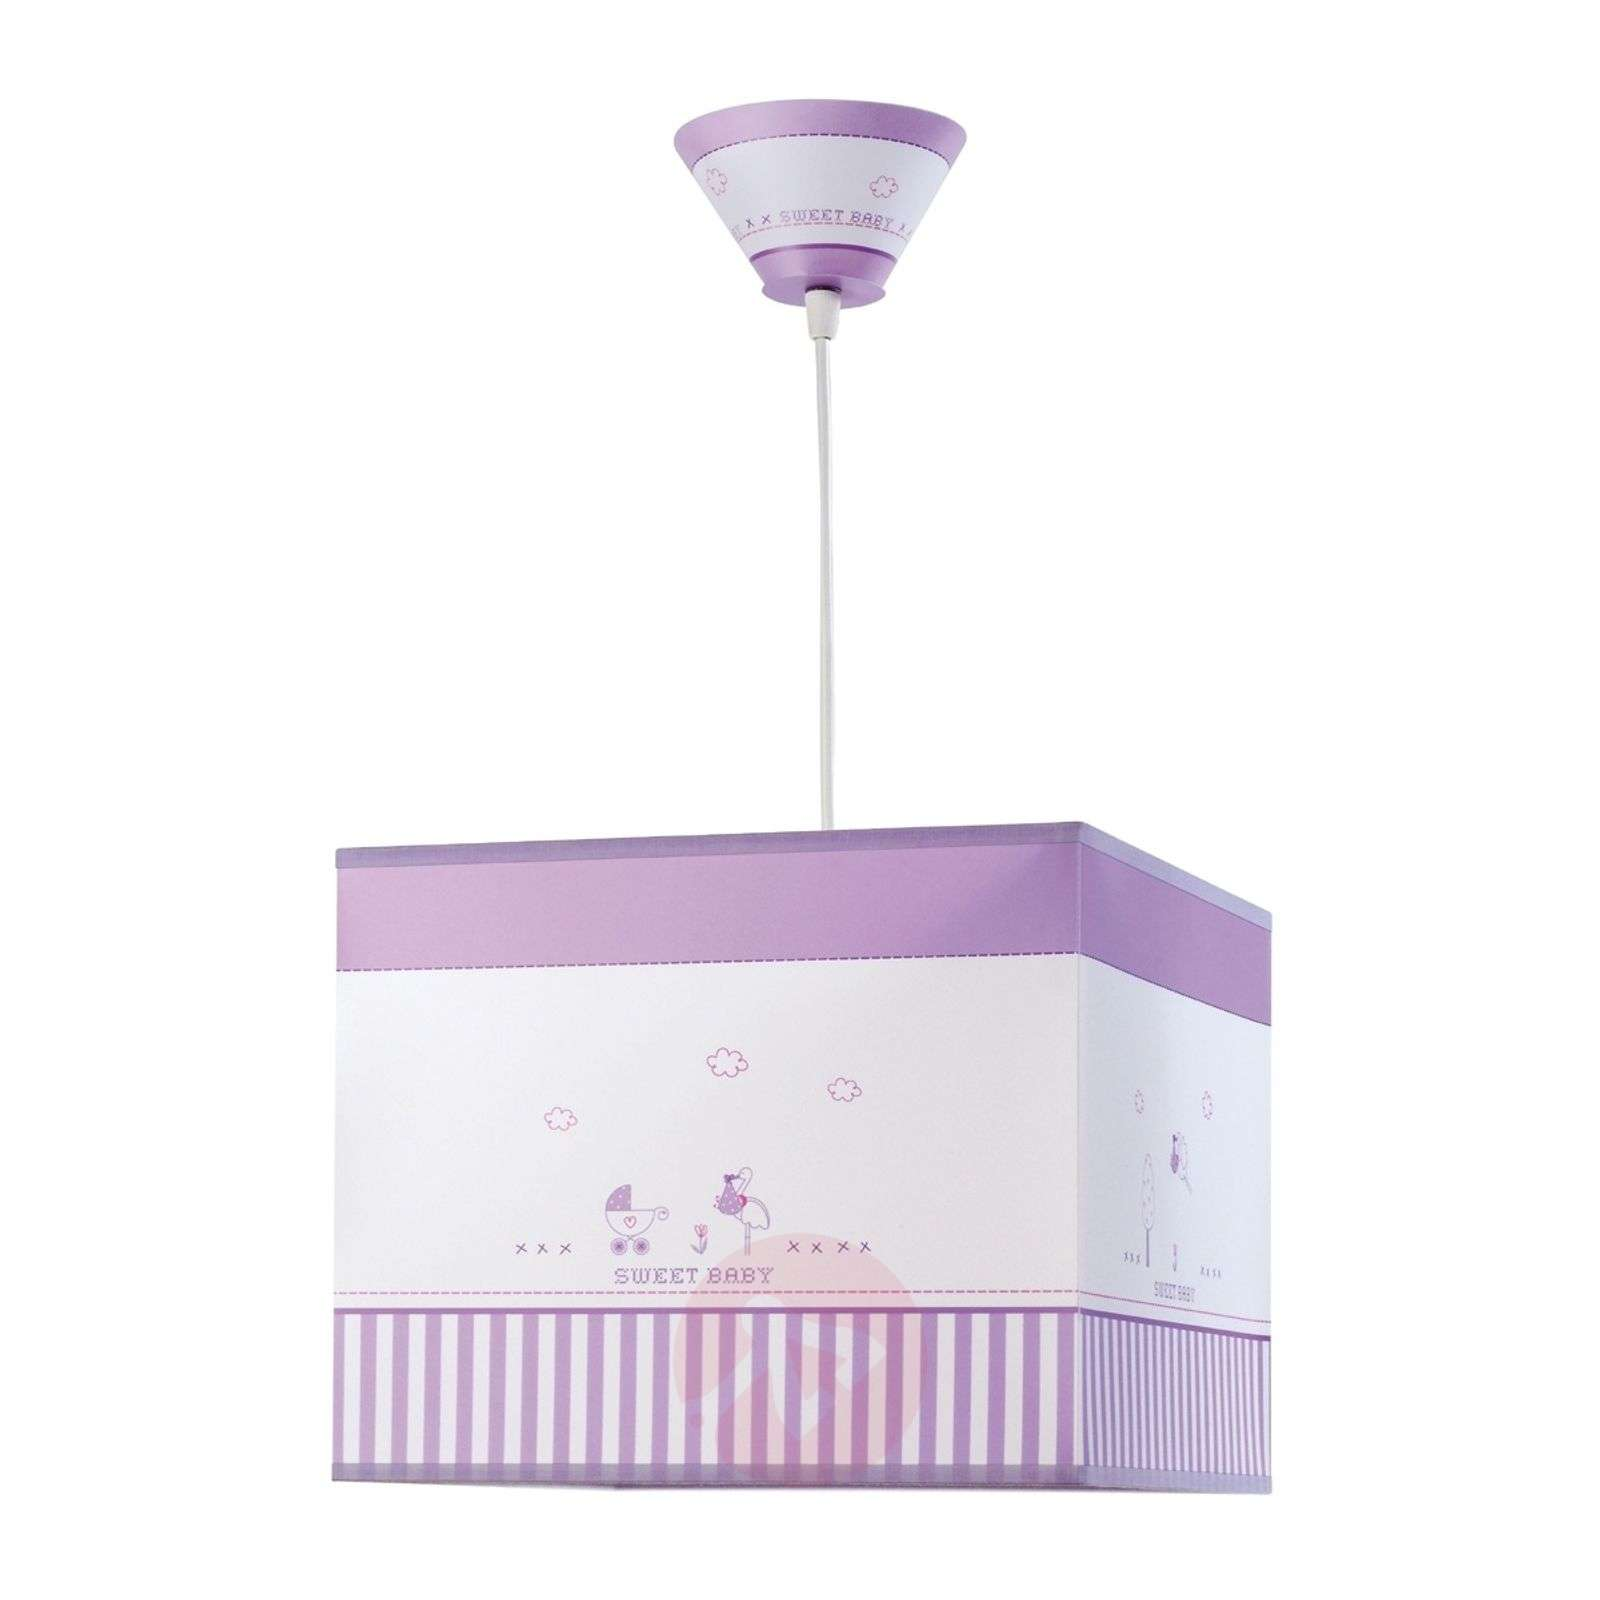 Cute pendant light SWEET BABY-2507193-01